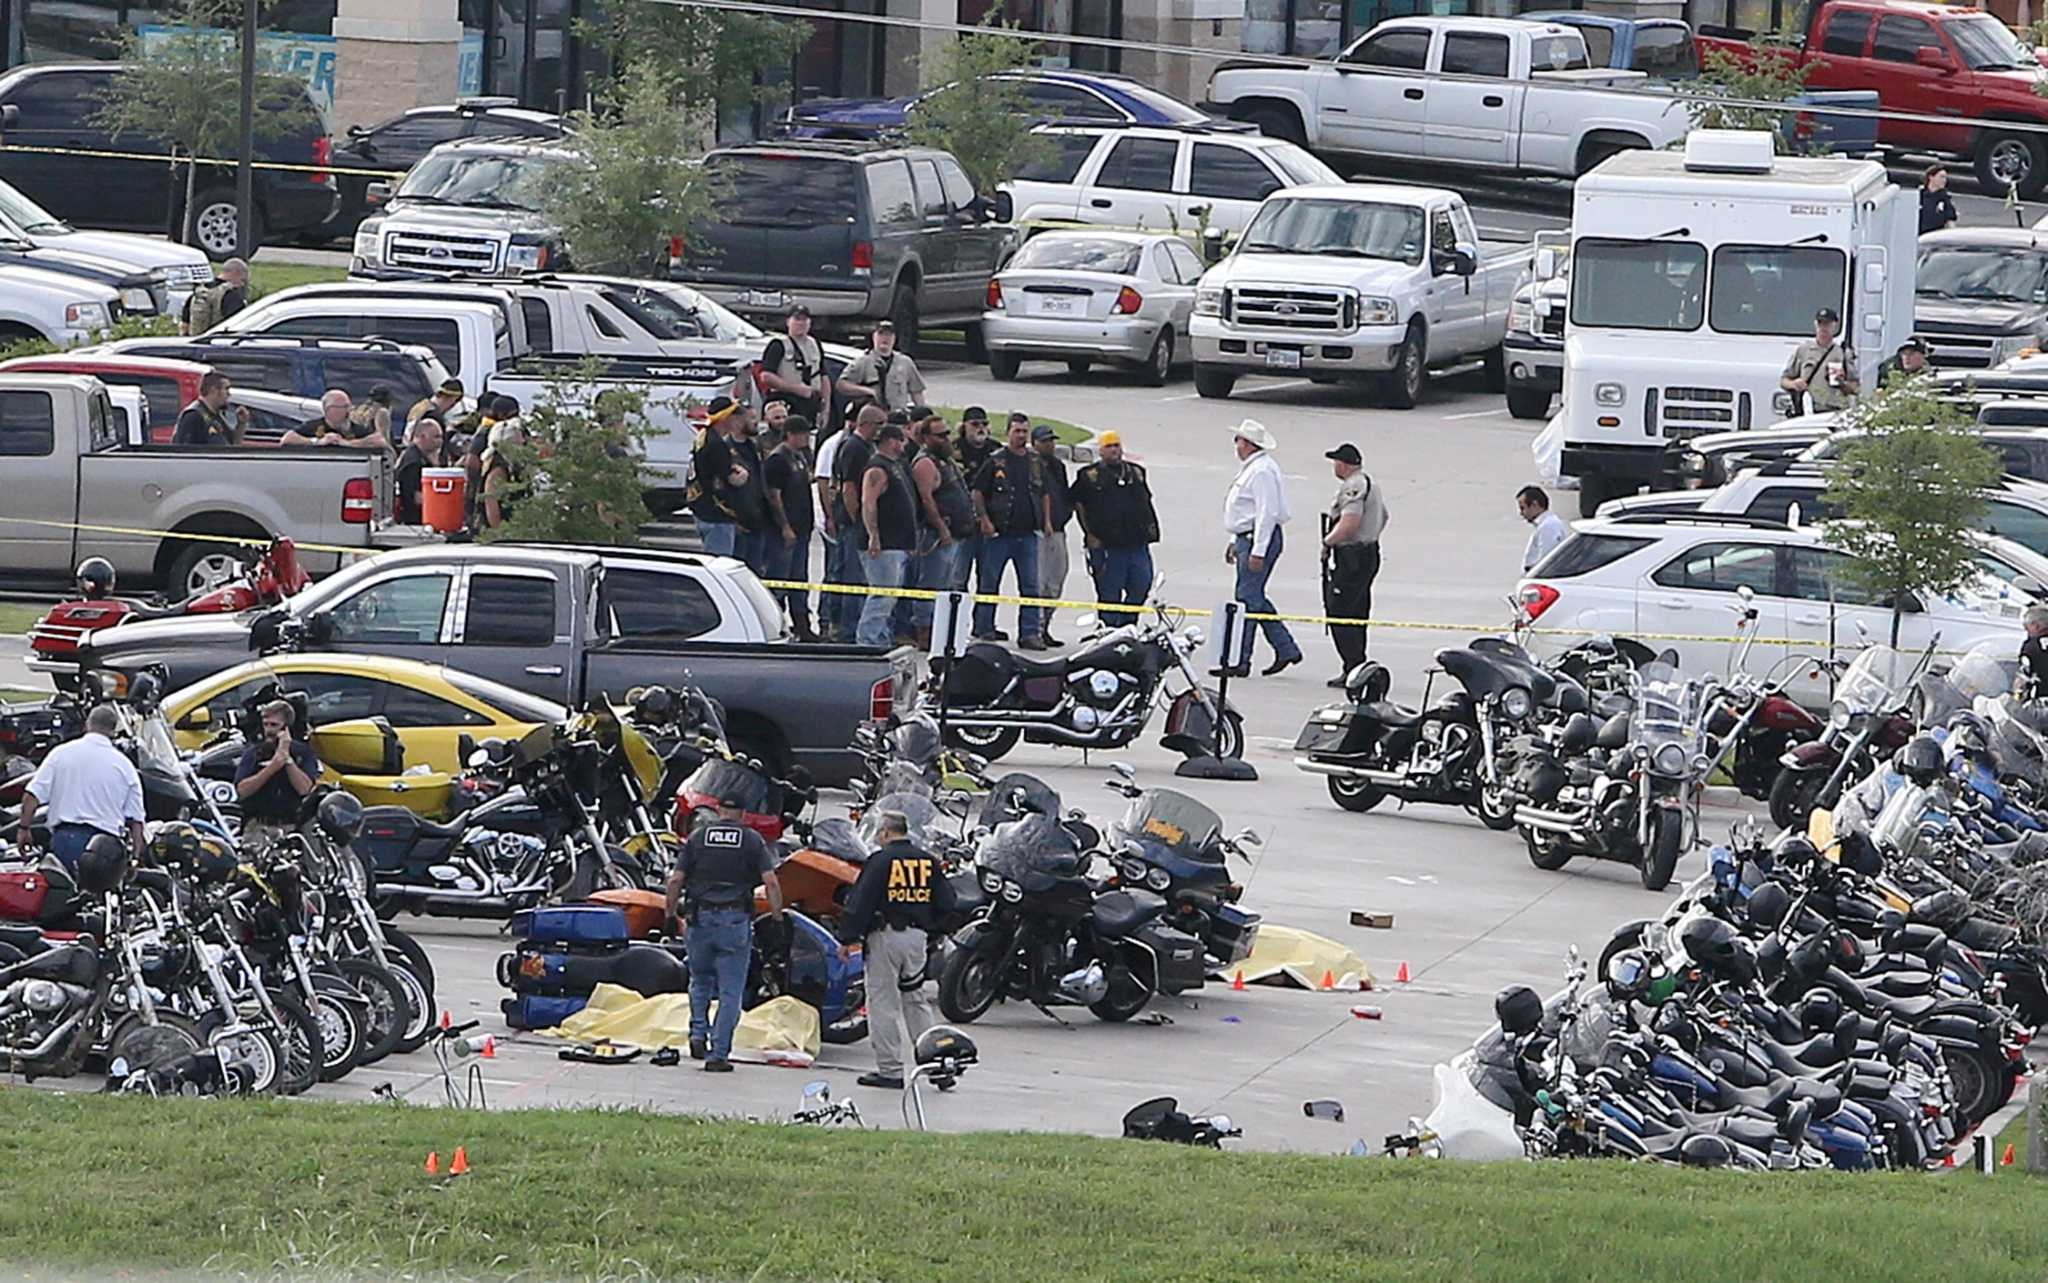 Three years after deadly biker shootout in Waco, criminal